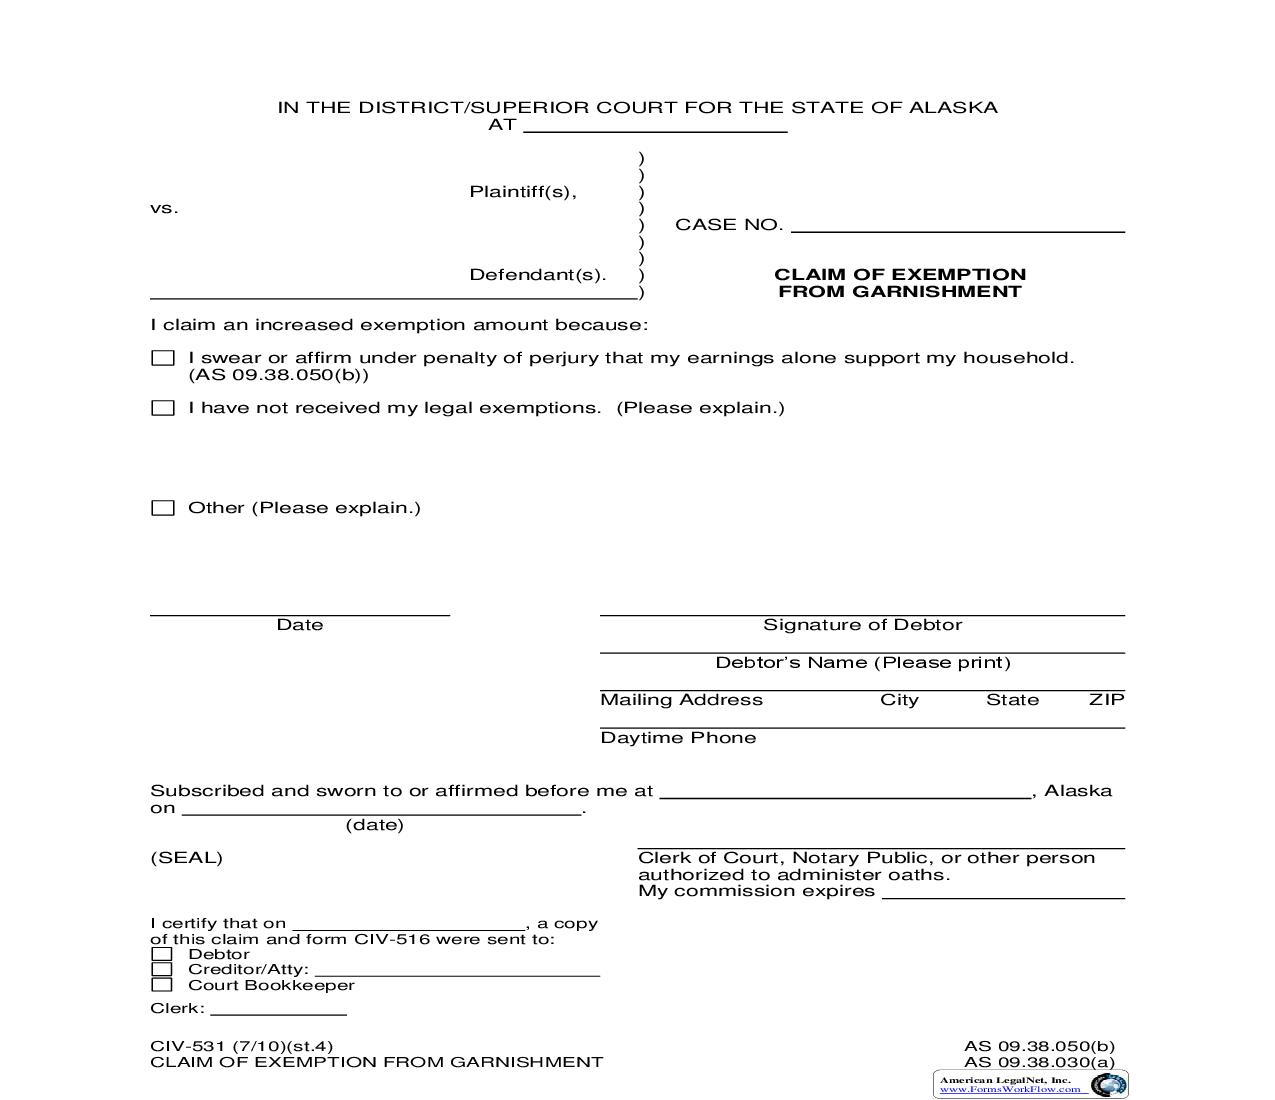 Claim Of Exemption From Garnishment {CIV-531} | Pdf Fpdf Doc Docx | Alaska